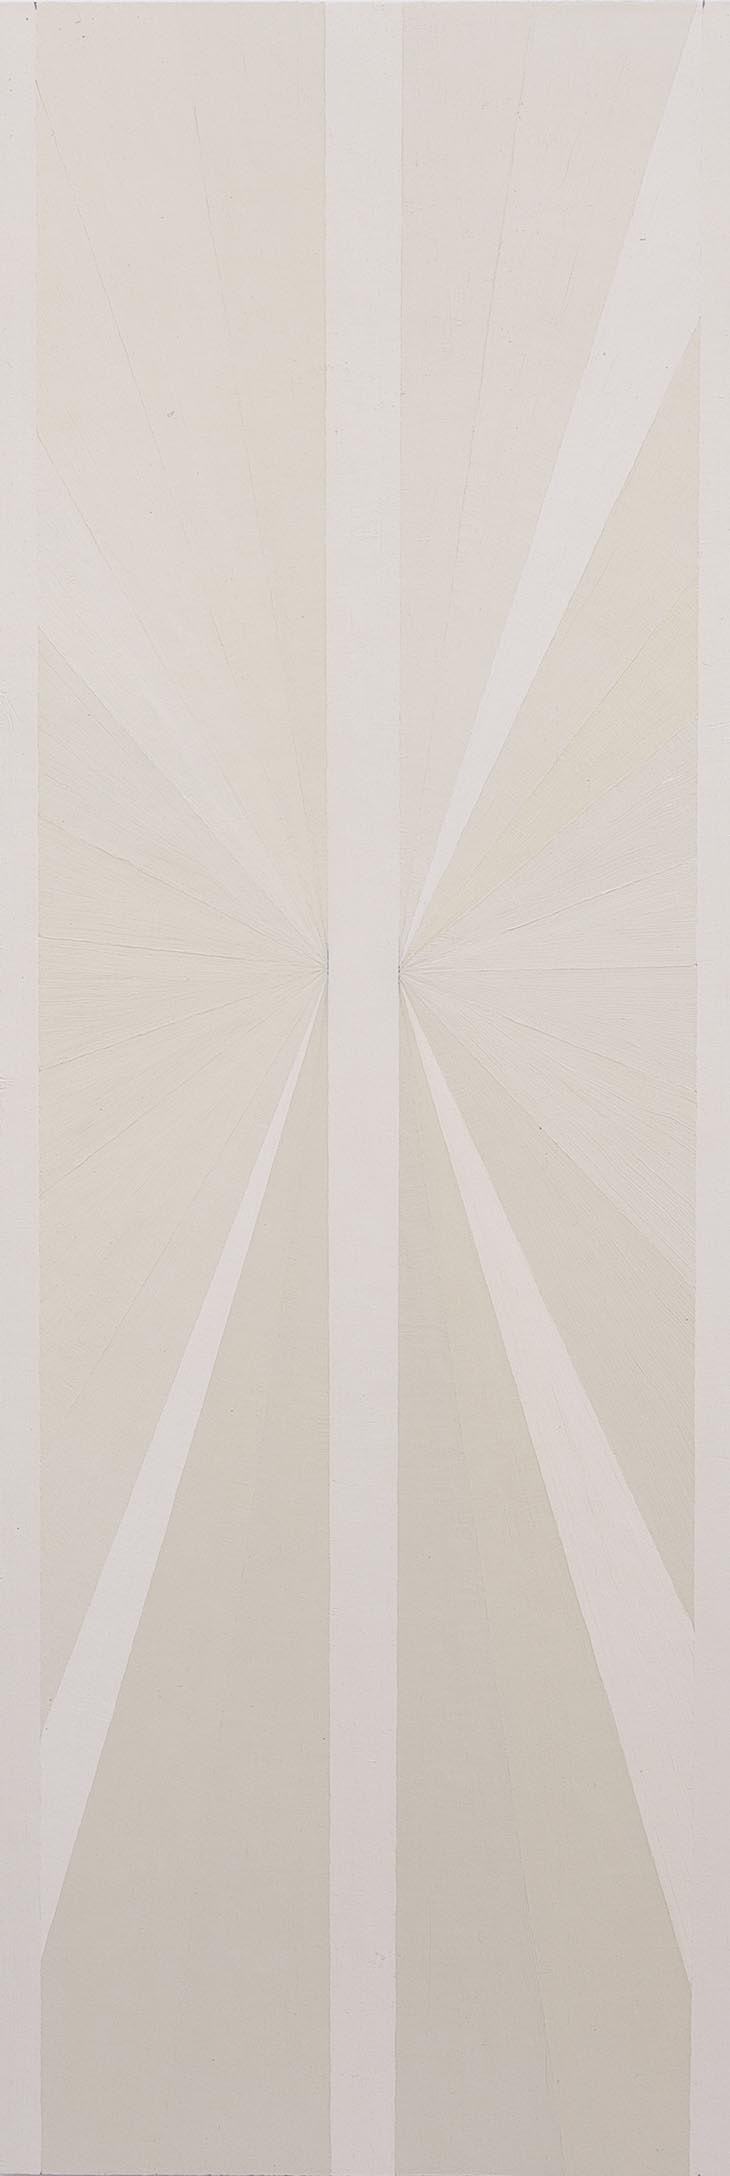 Untitled (White Butterfly)